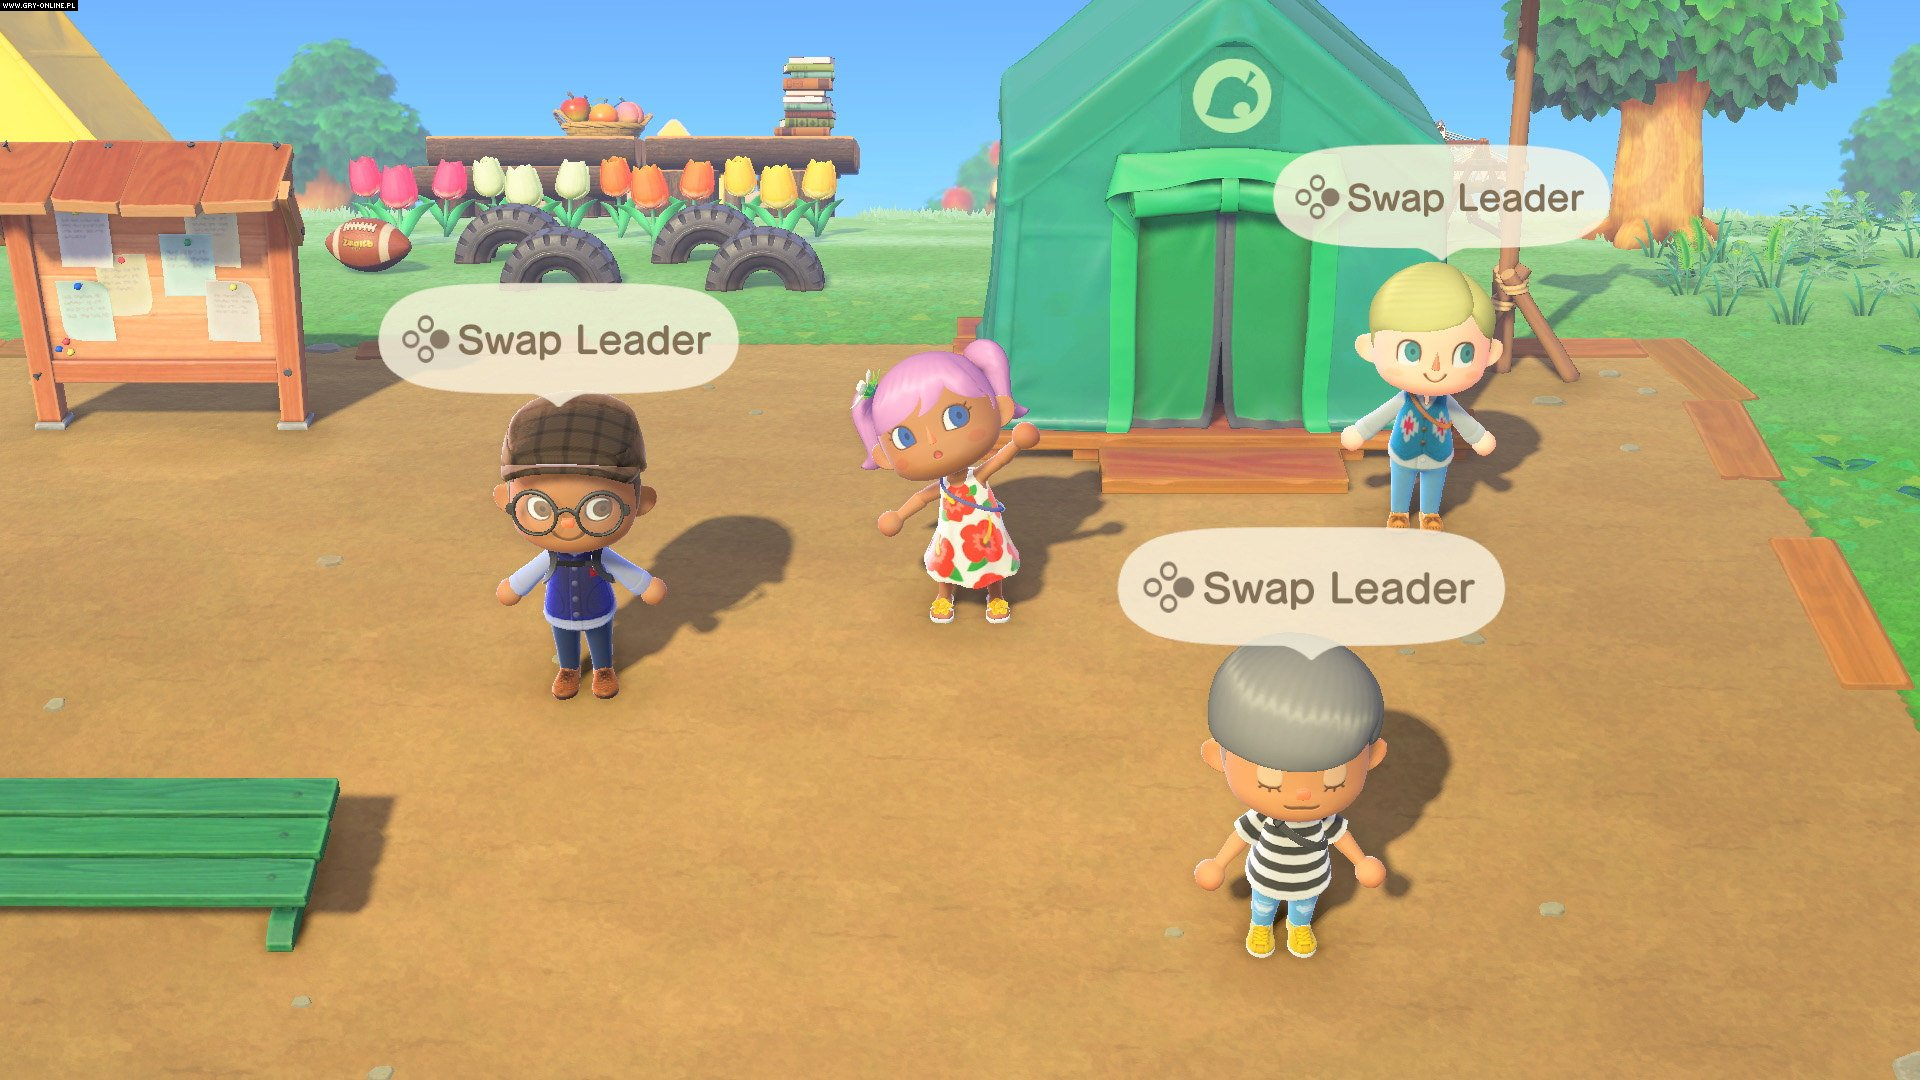 Animal Crossing: New Horizons Switch Games Image 3/76, Nintendo